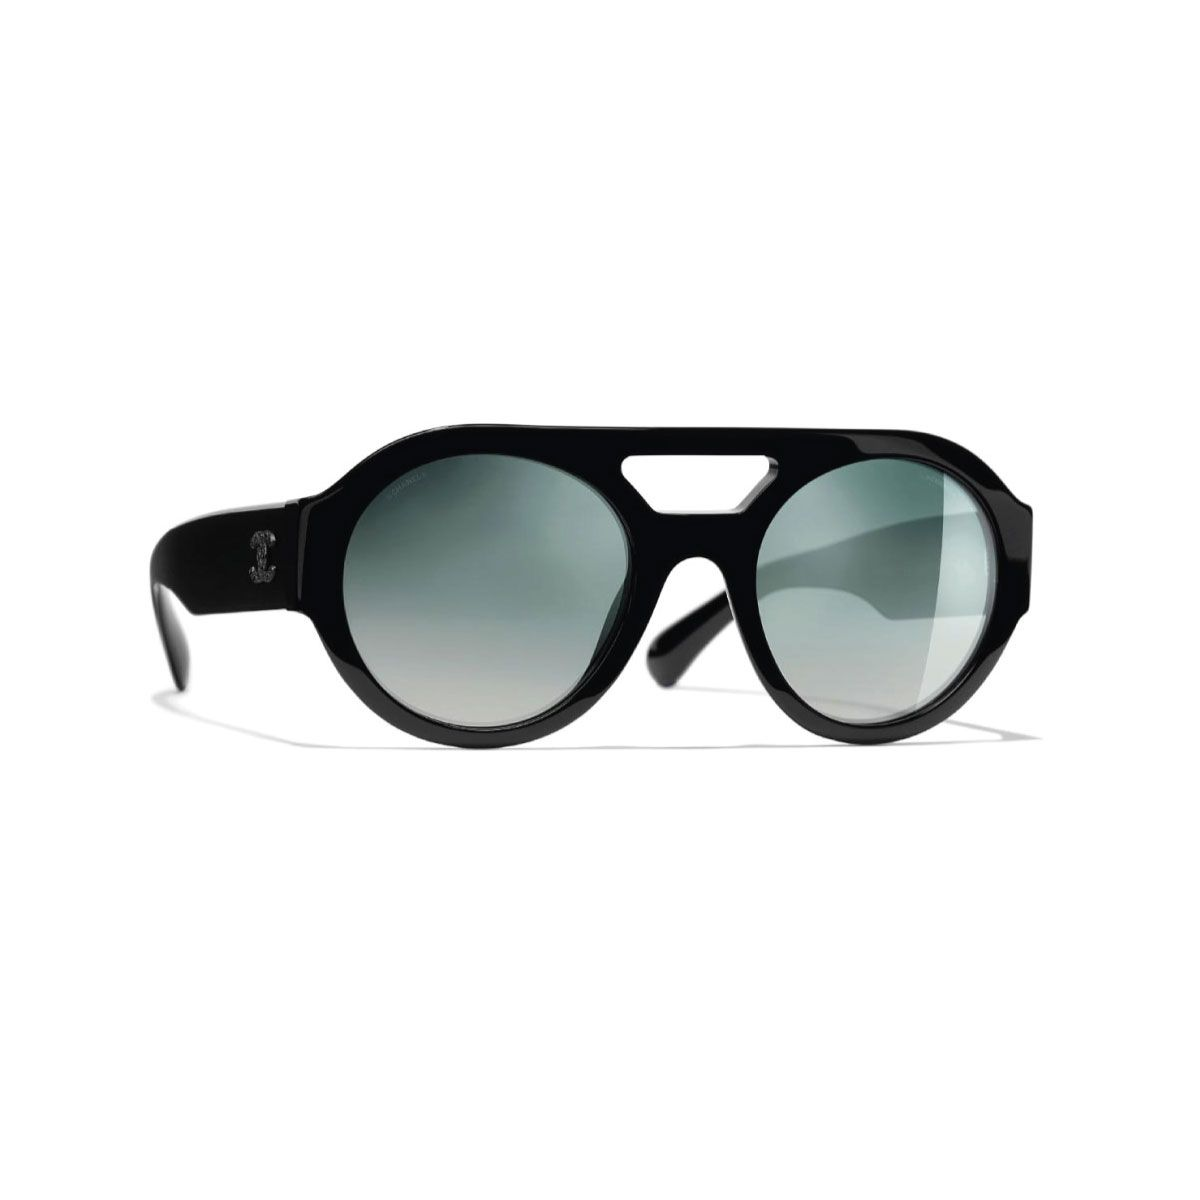 Round Sunglasses 450 Sunglasses